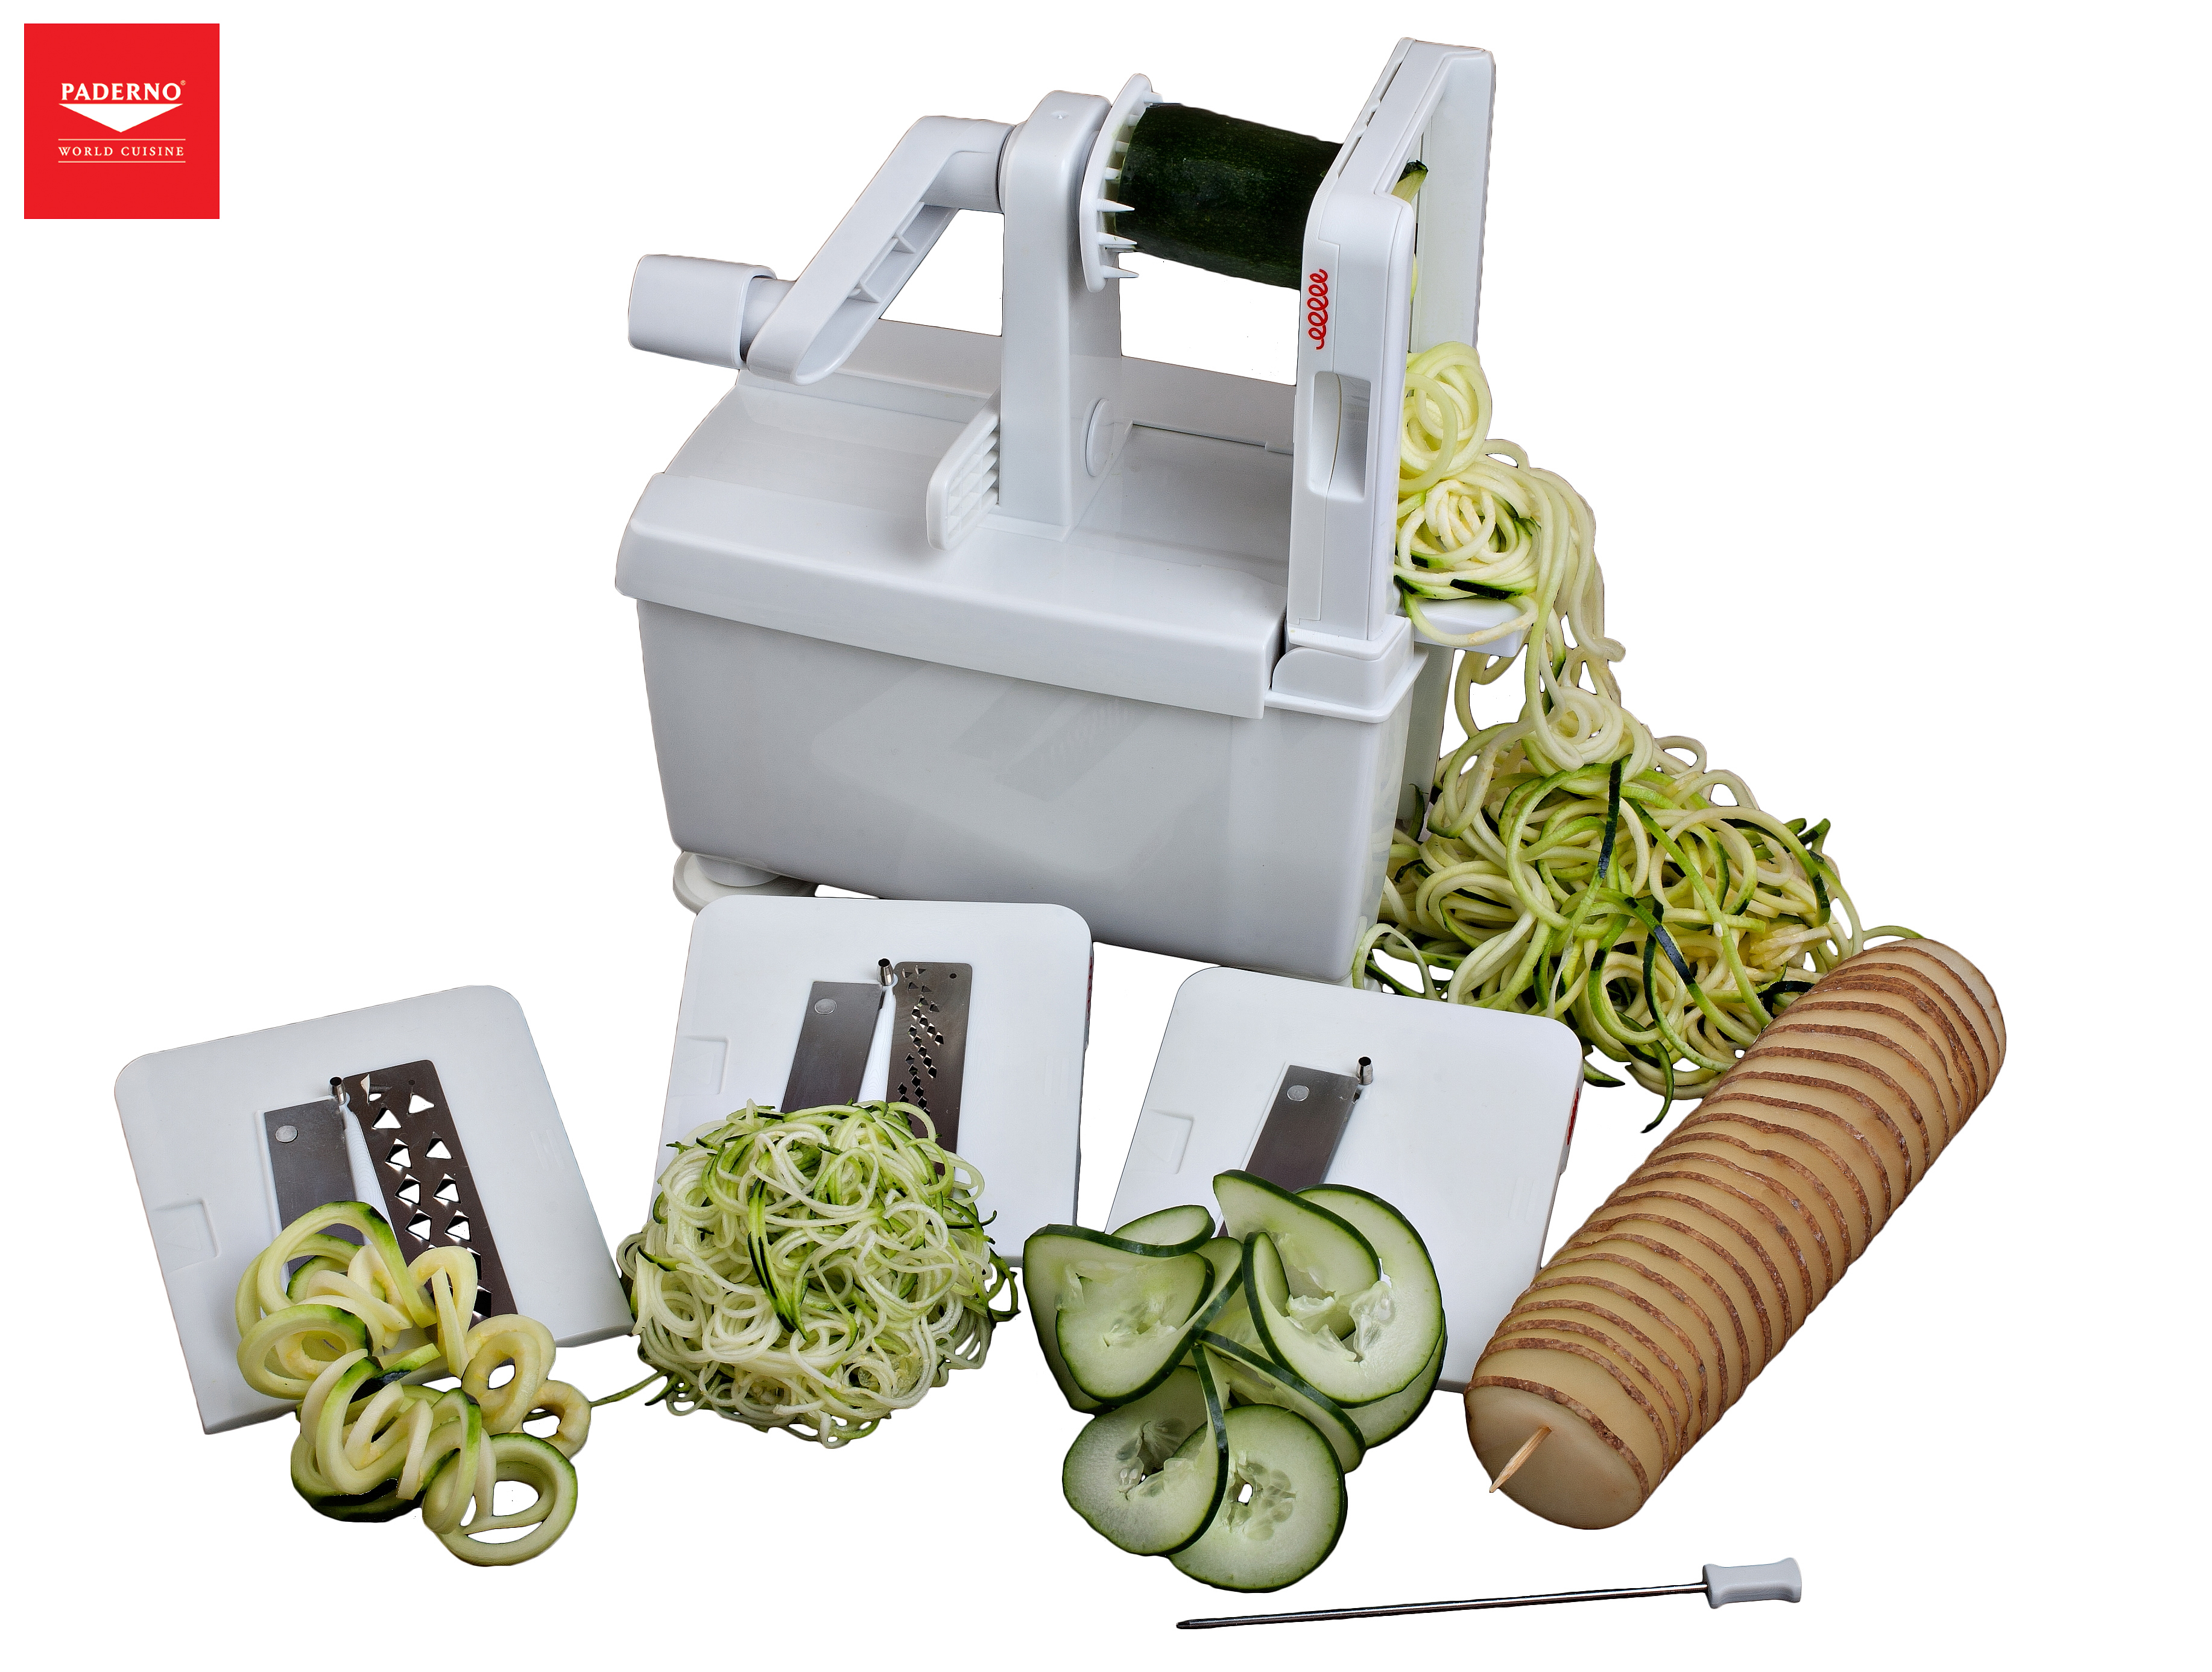 Newly redesigned spiral slicer by paderno world cuisine - Paderno world cuisine spiral vegetable slicer ...